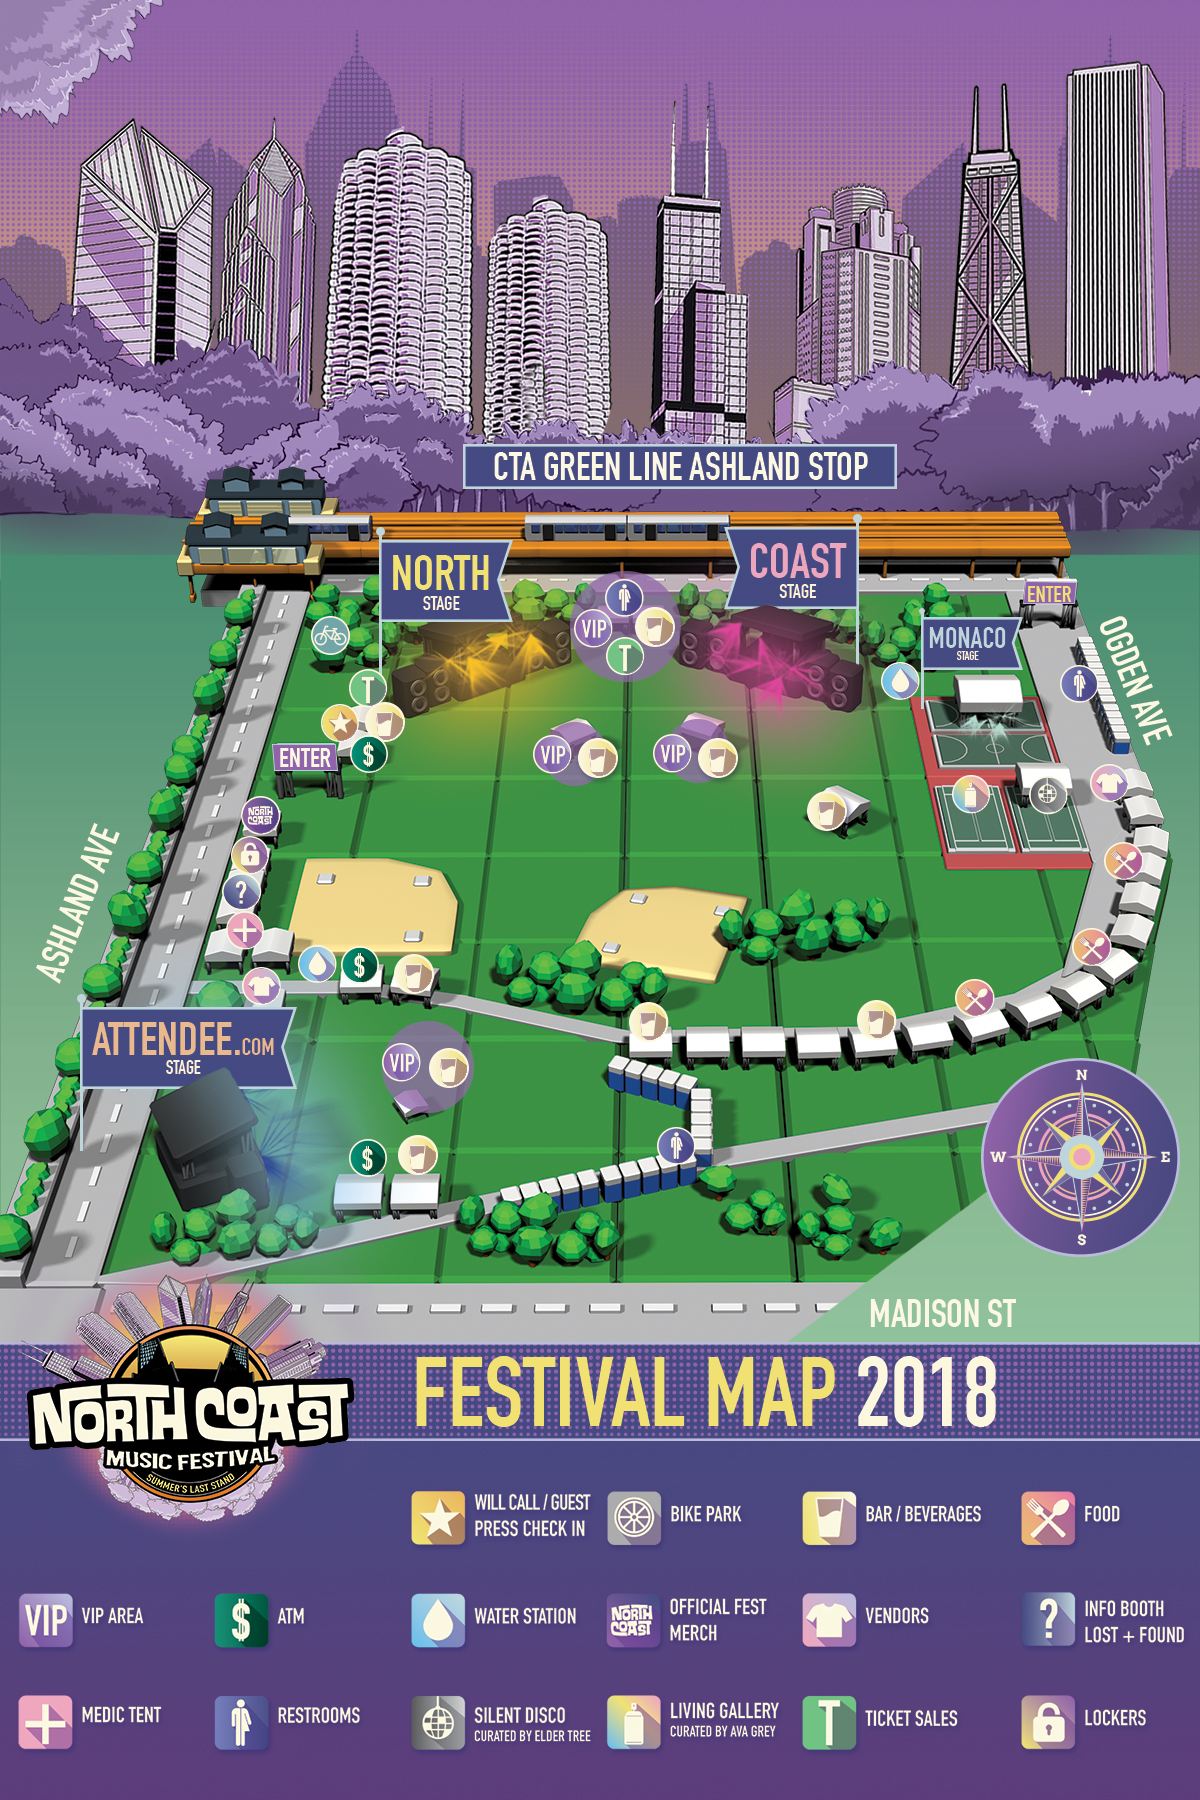 Preview: NCMF -